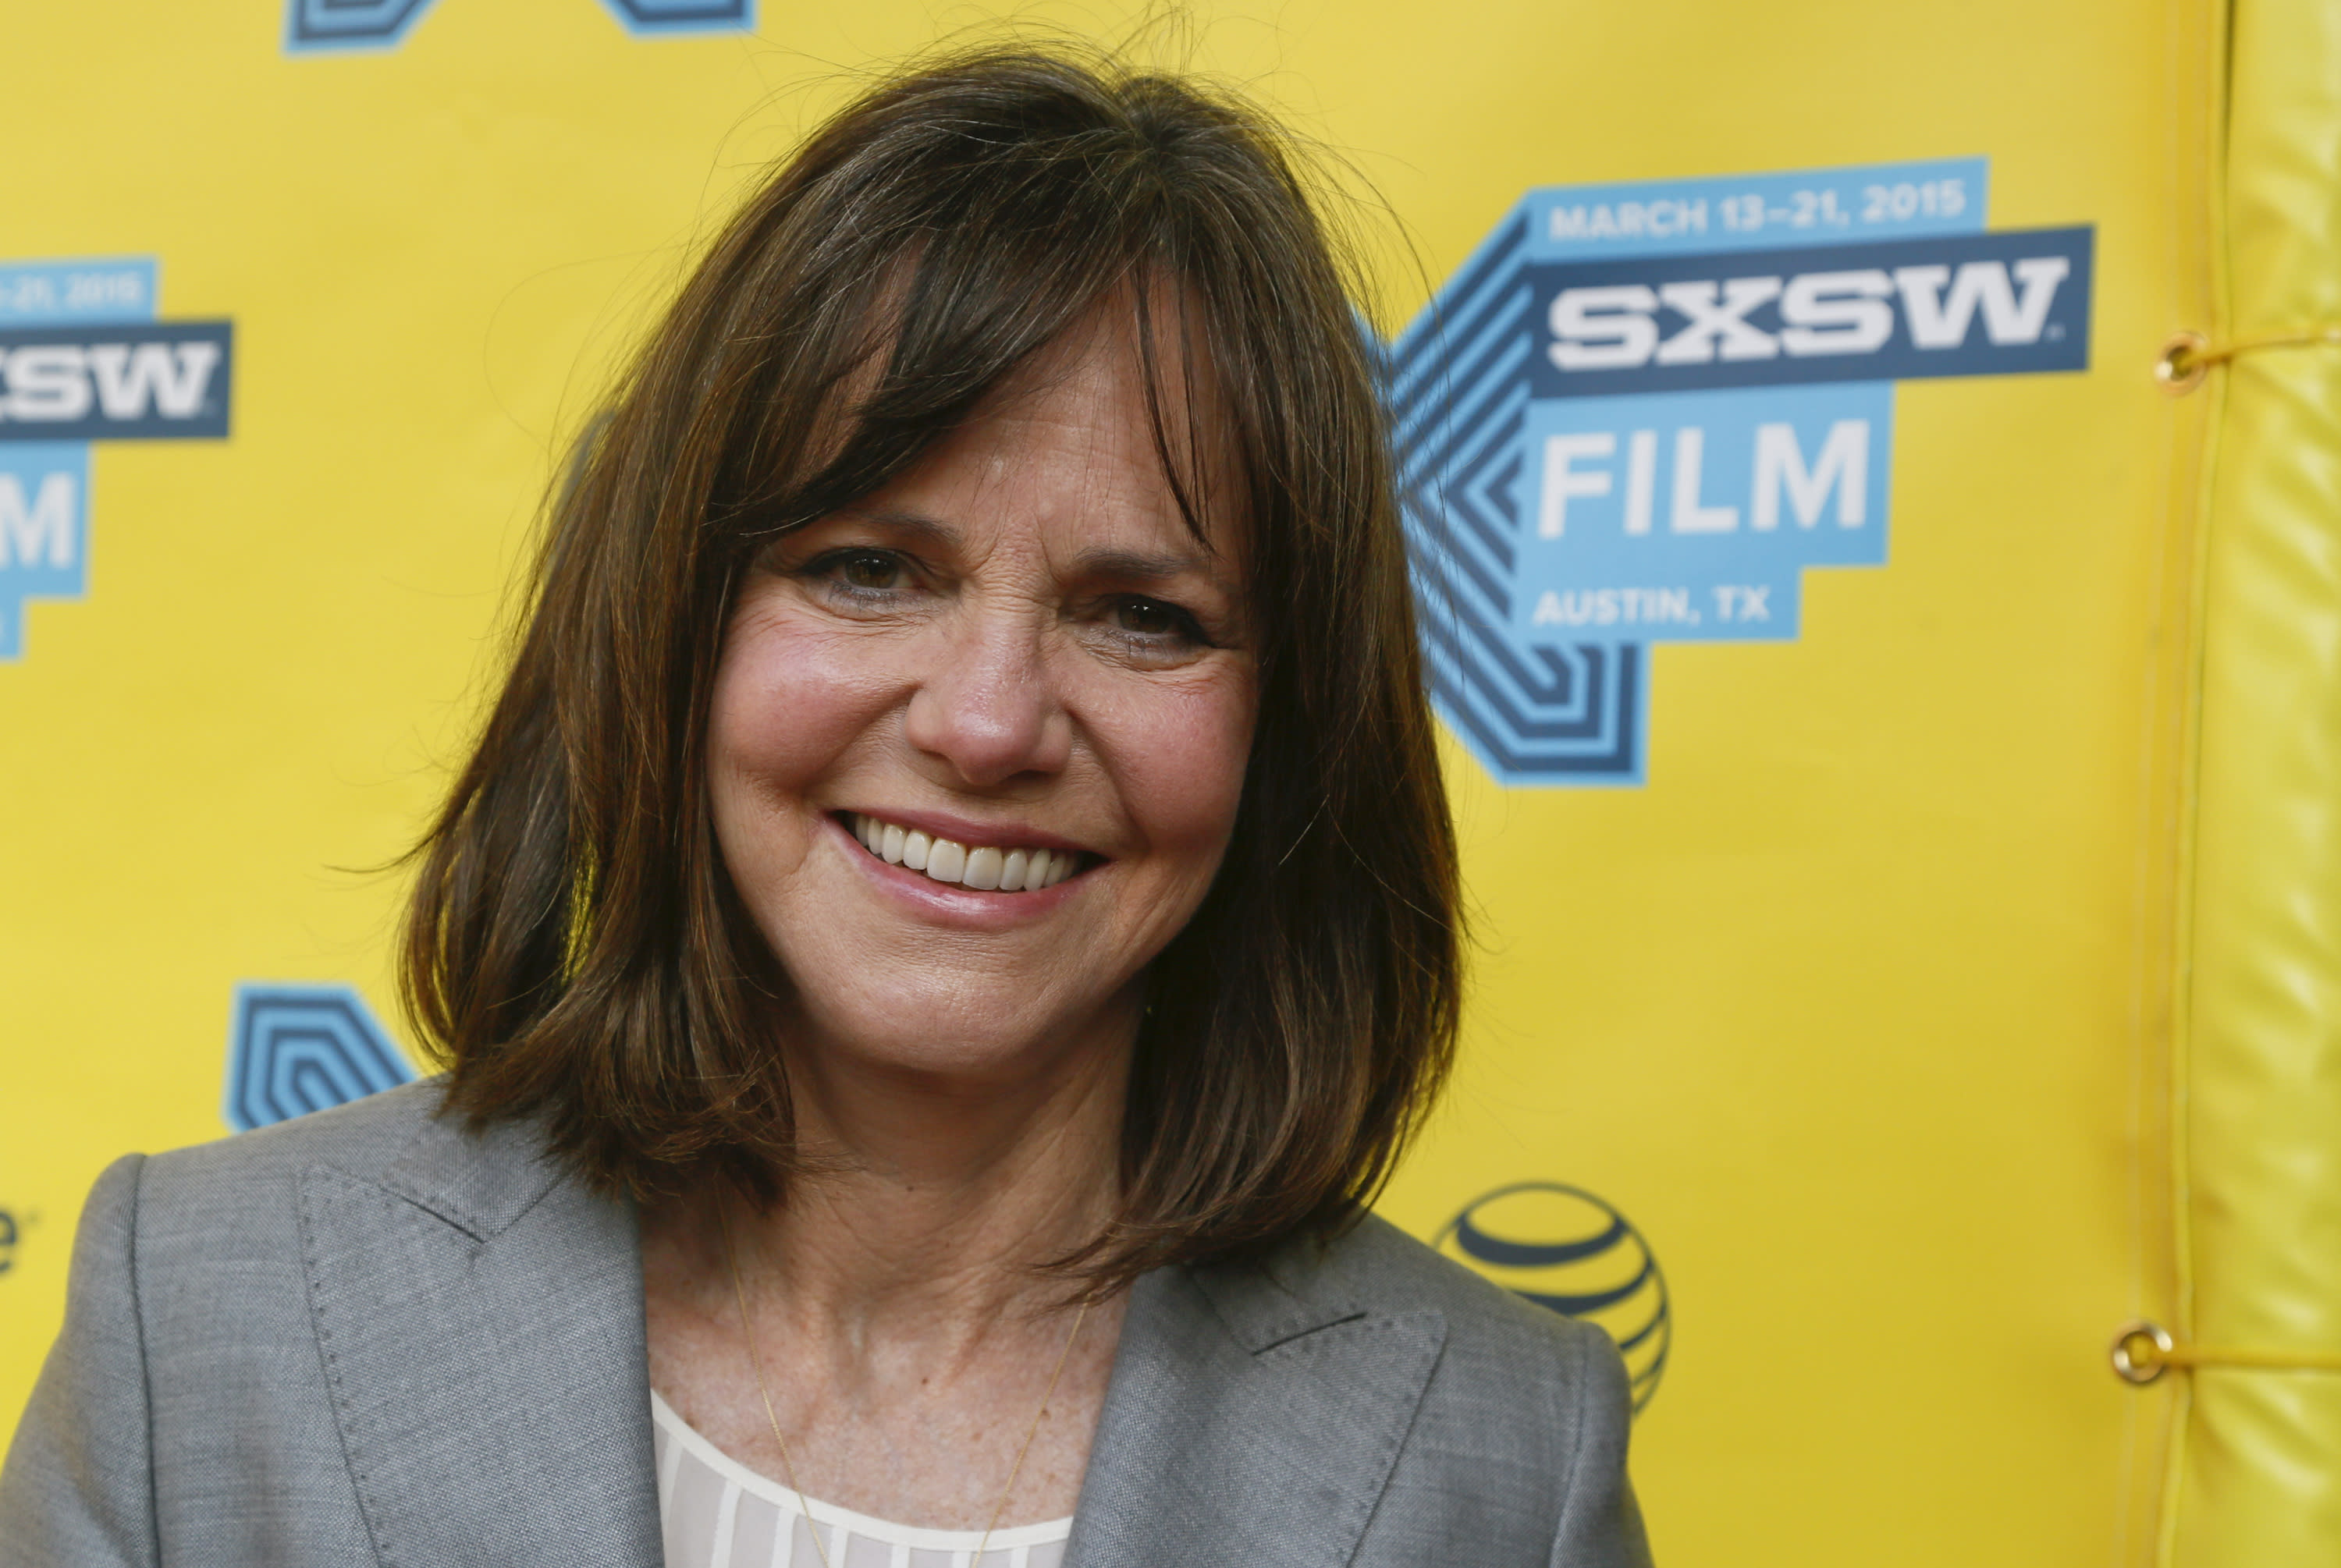 Obama to award arts medals to Sally Field, Stephen King